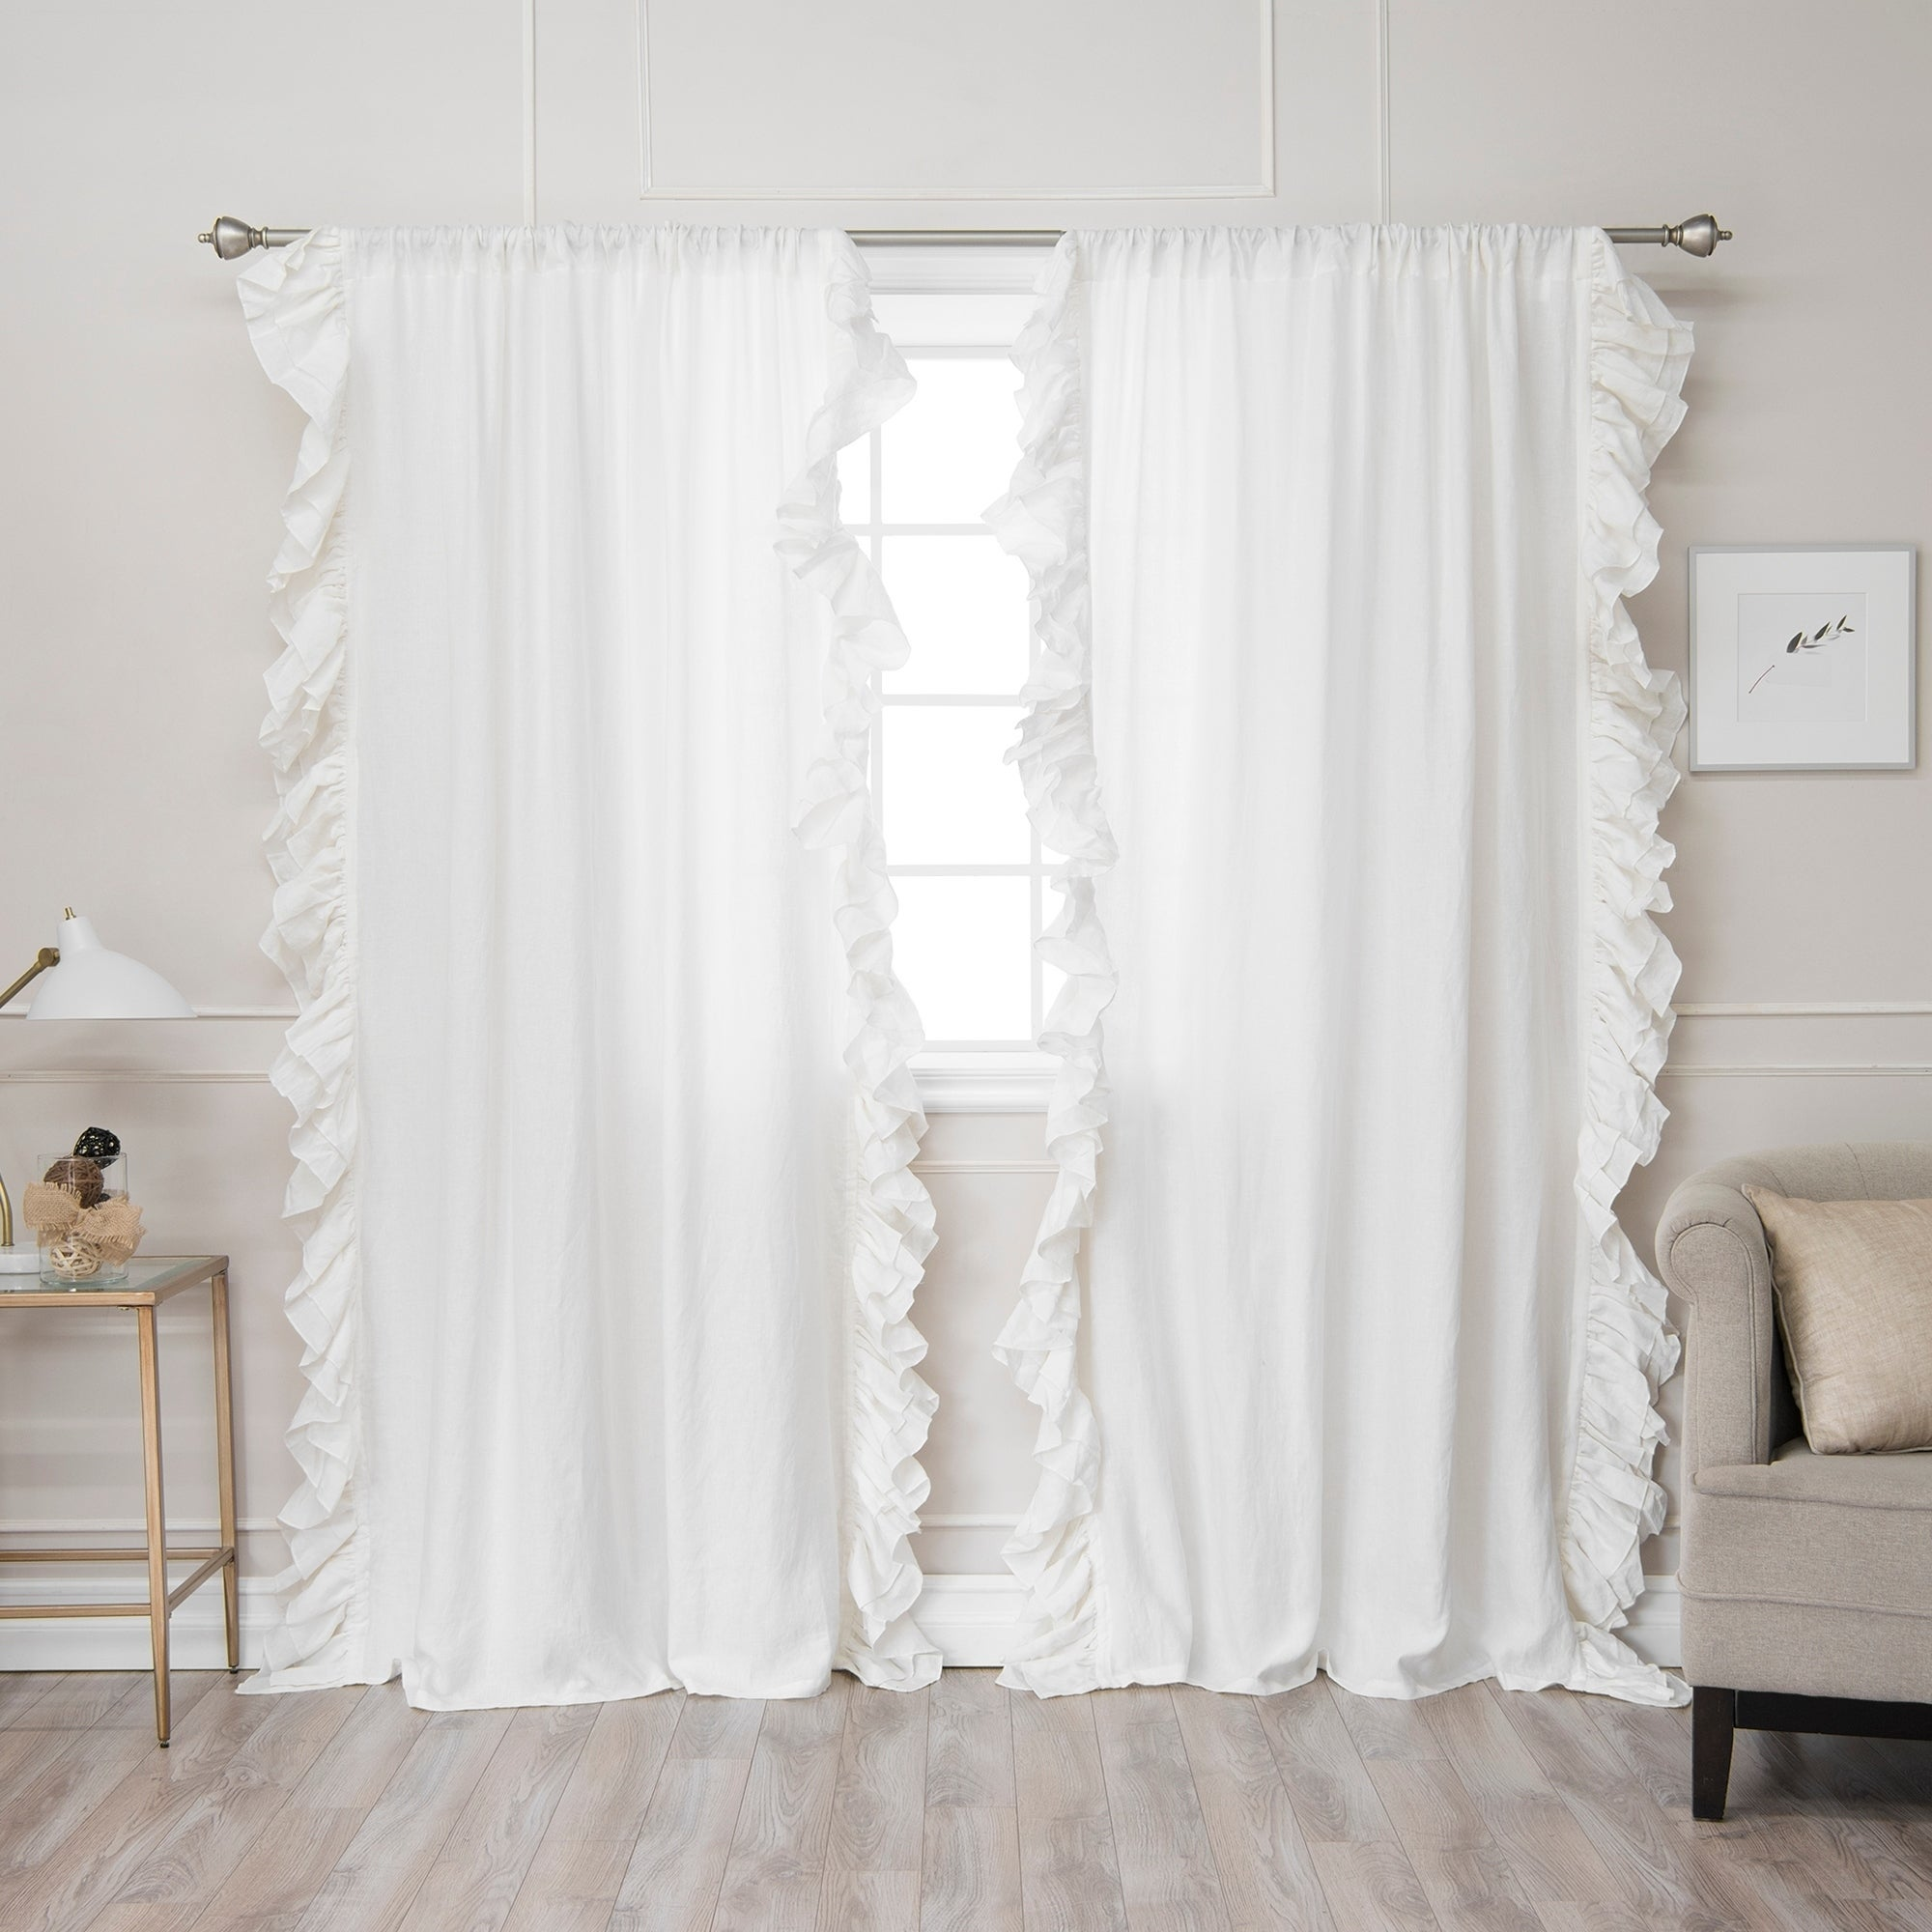 these the white and i a found got girls for store ruffled ruffle making panel piece at curtains thrift curtain sheets pin bedrooms